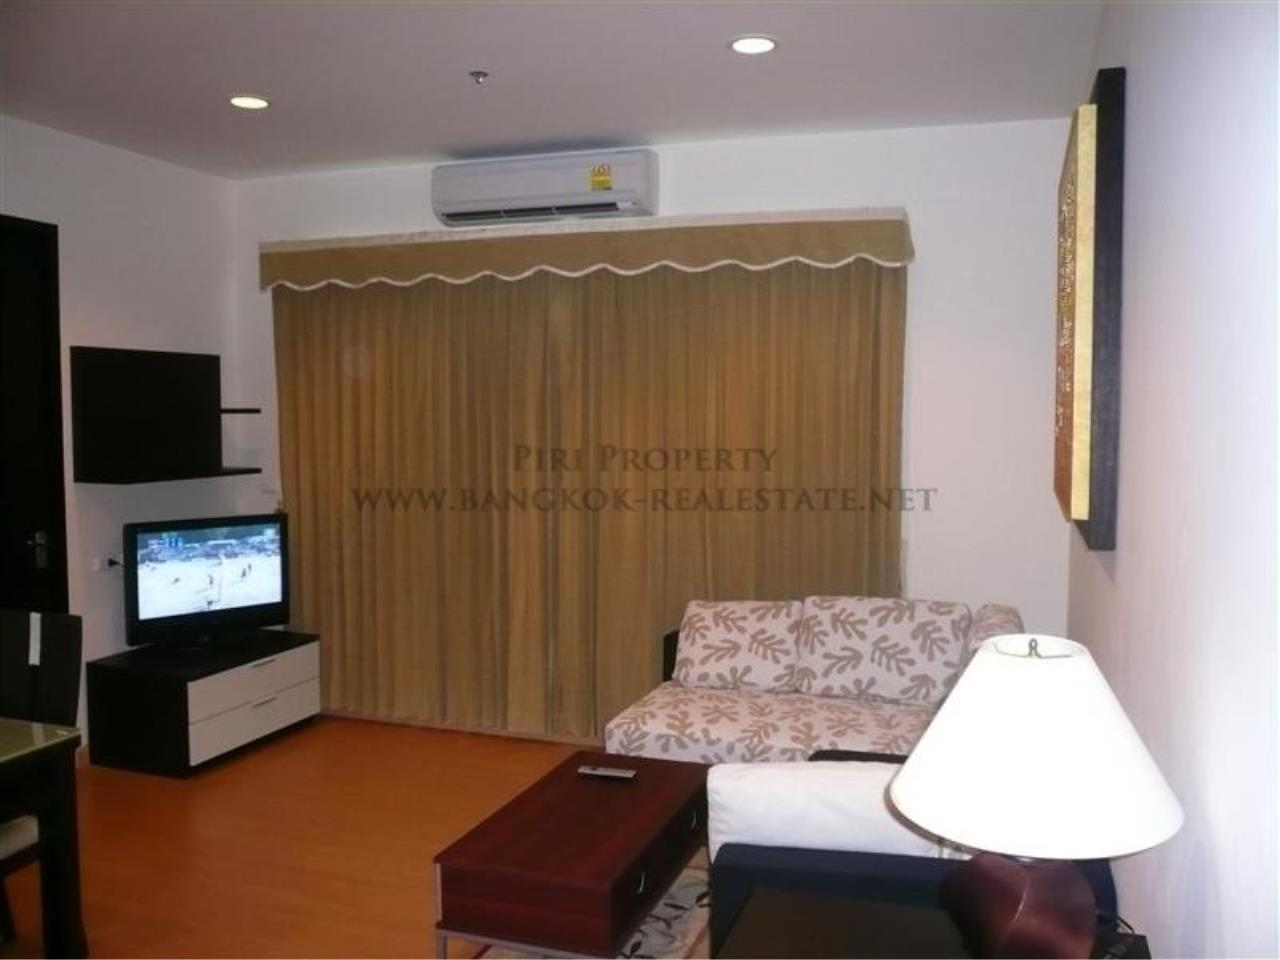 Piri Property Agency's Fully furnished 1 Bedroom next to Ratchatewi BTS - Baan Klang Krung Siam Pathumwan 6